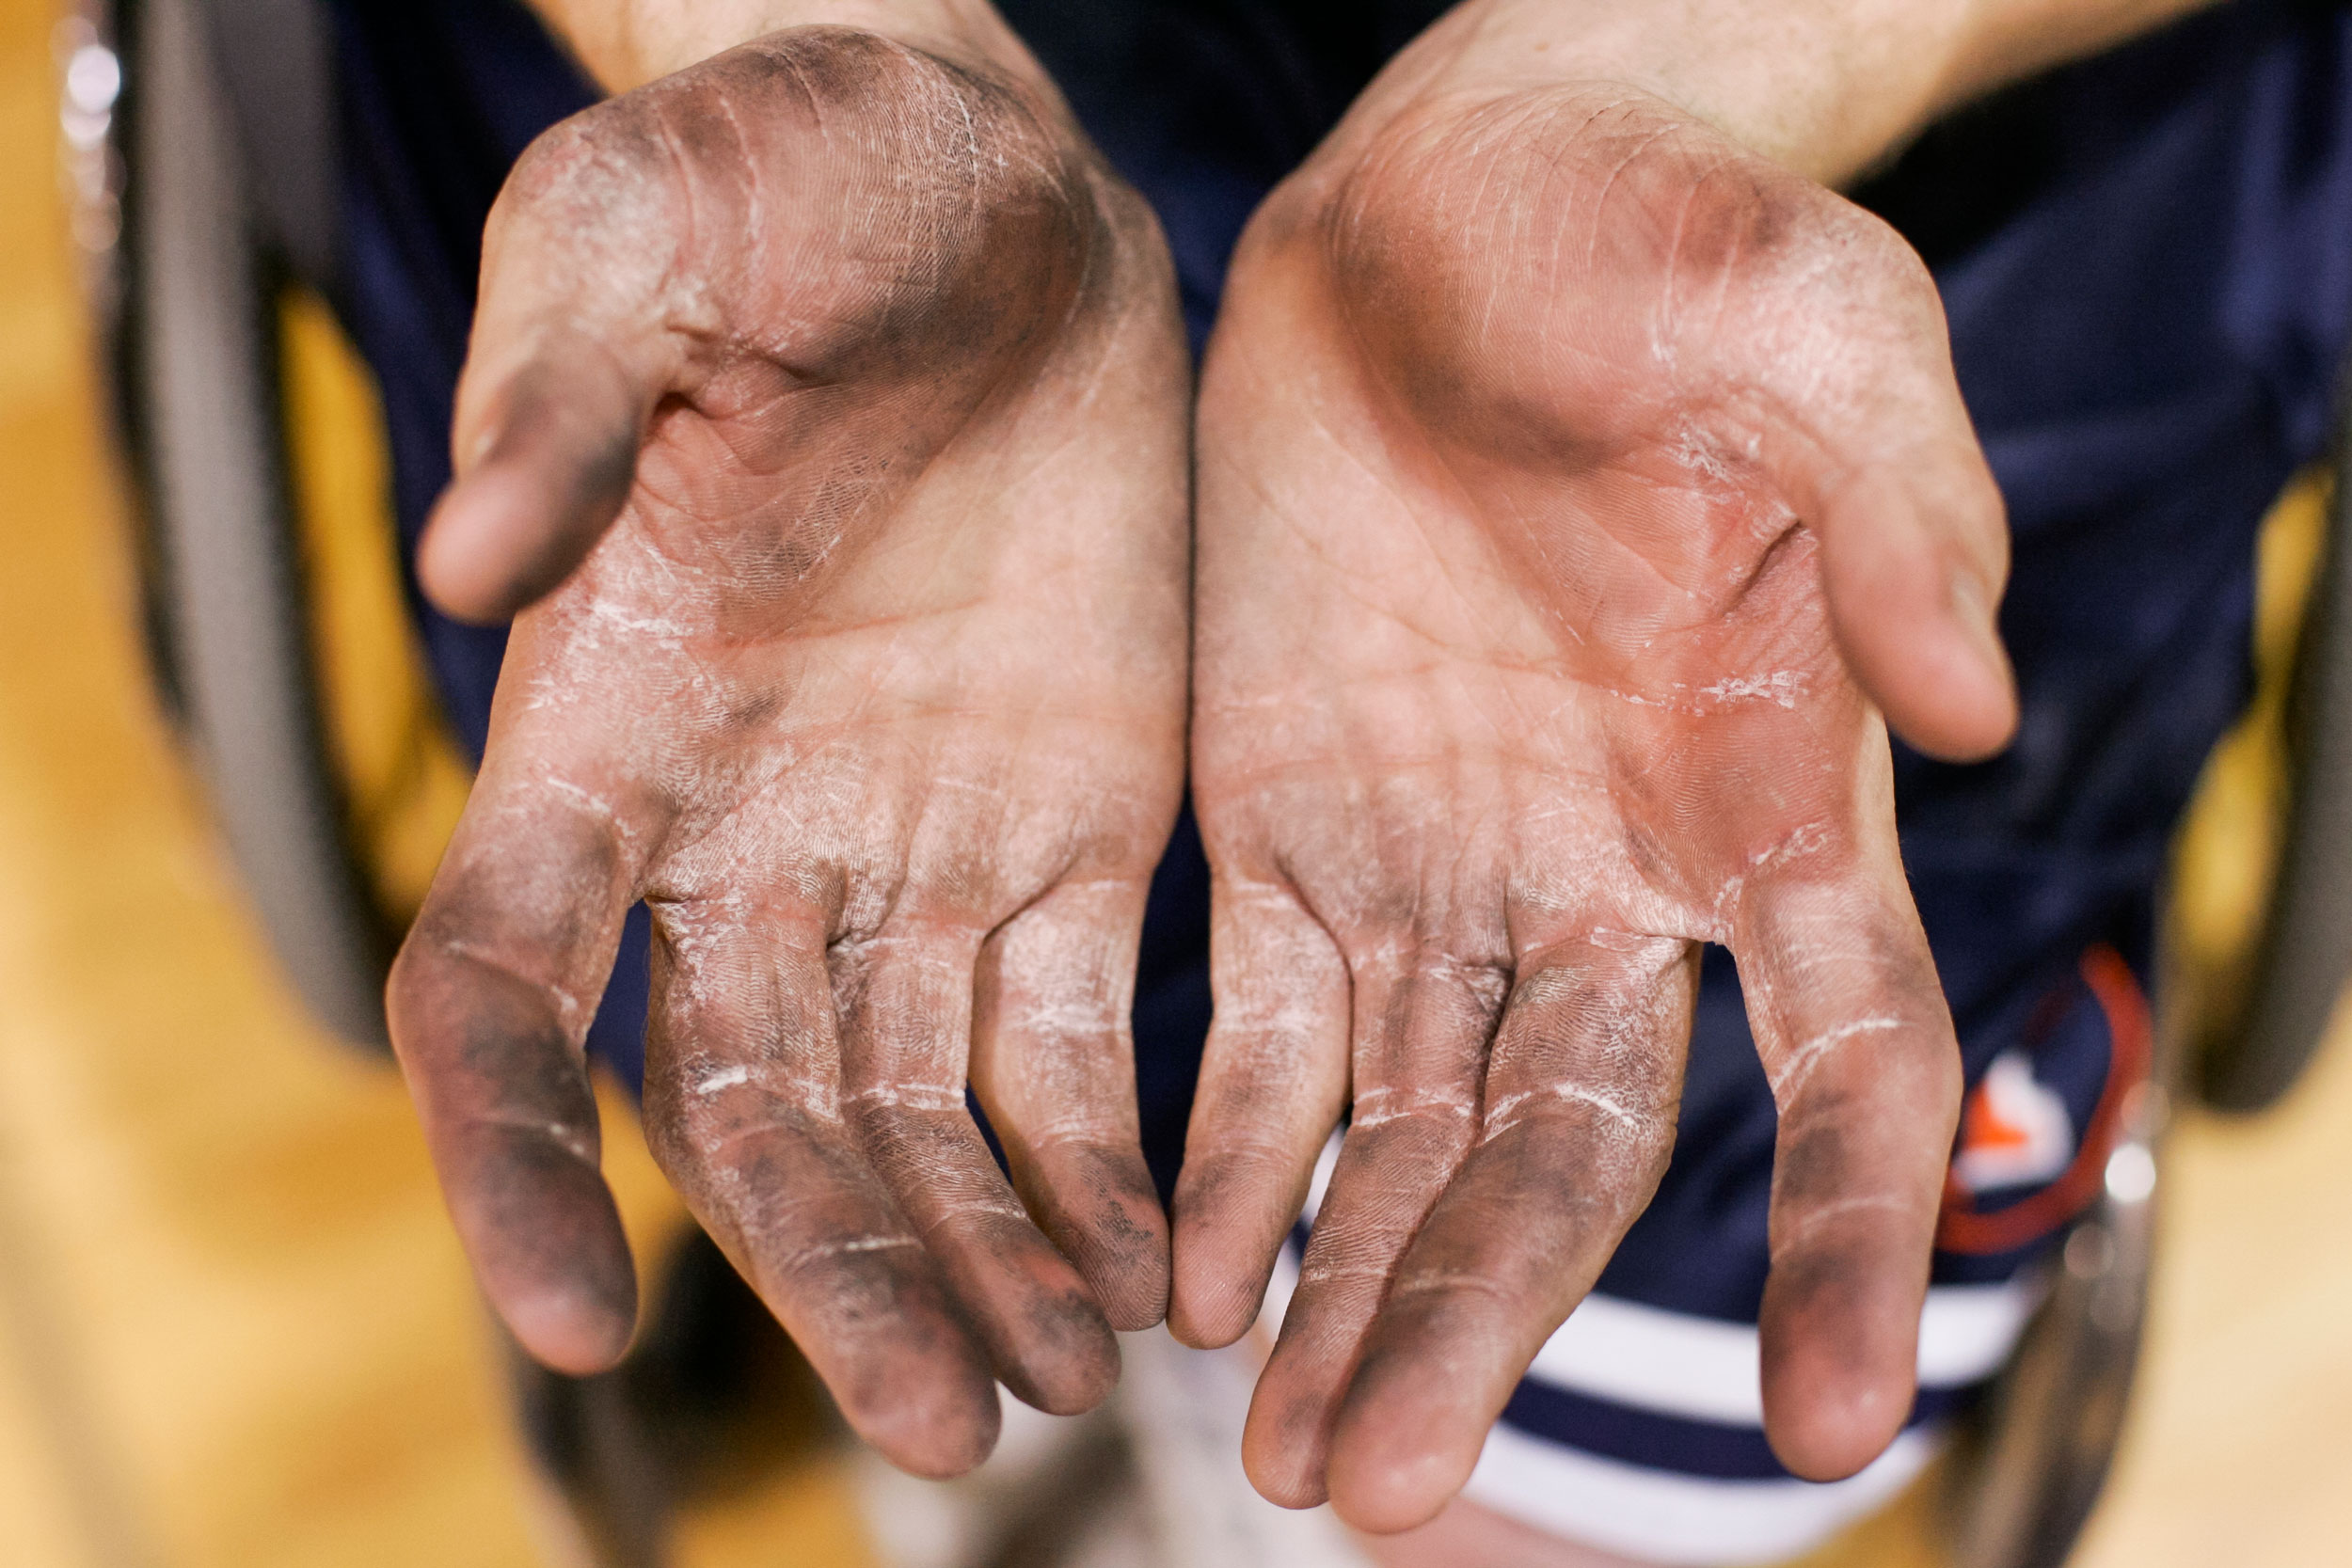 """After playing two games in a row at a University of Wisconsin-Whitewater tournament, Denny Muha's hands show calluses, peeling skin, and caked-on dirt. His hands get so dirty from pushing his wheelchair so much. """"Some courts are dirtier than others,"""" Muha remarked."""